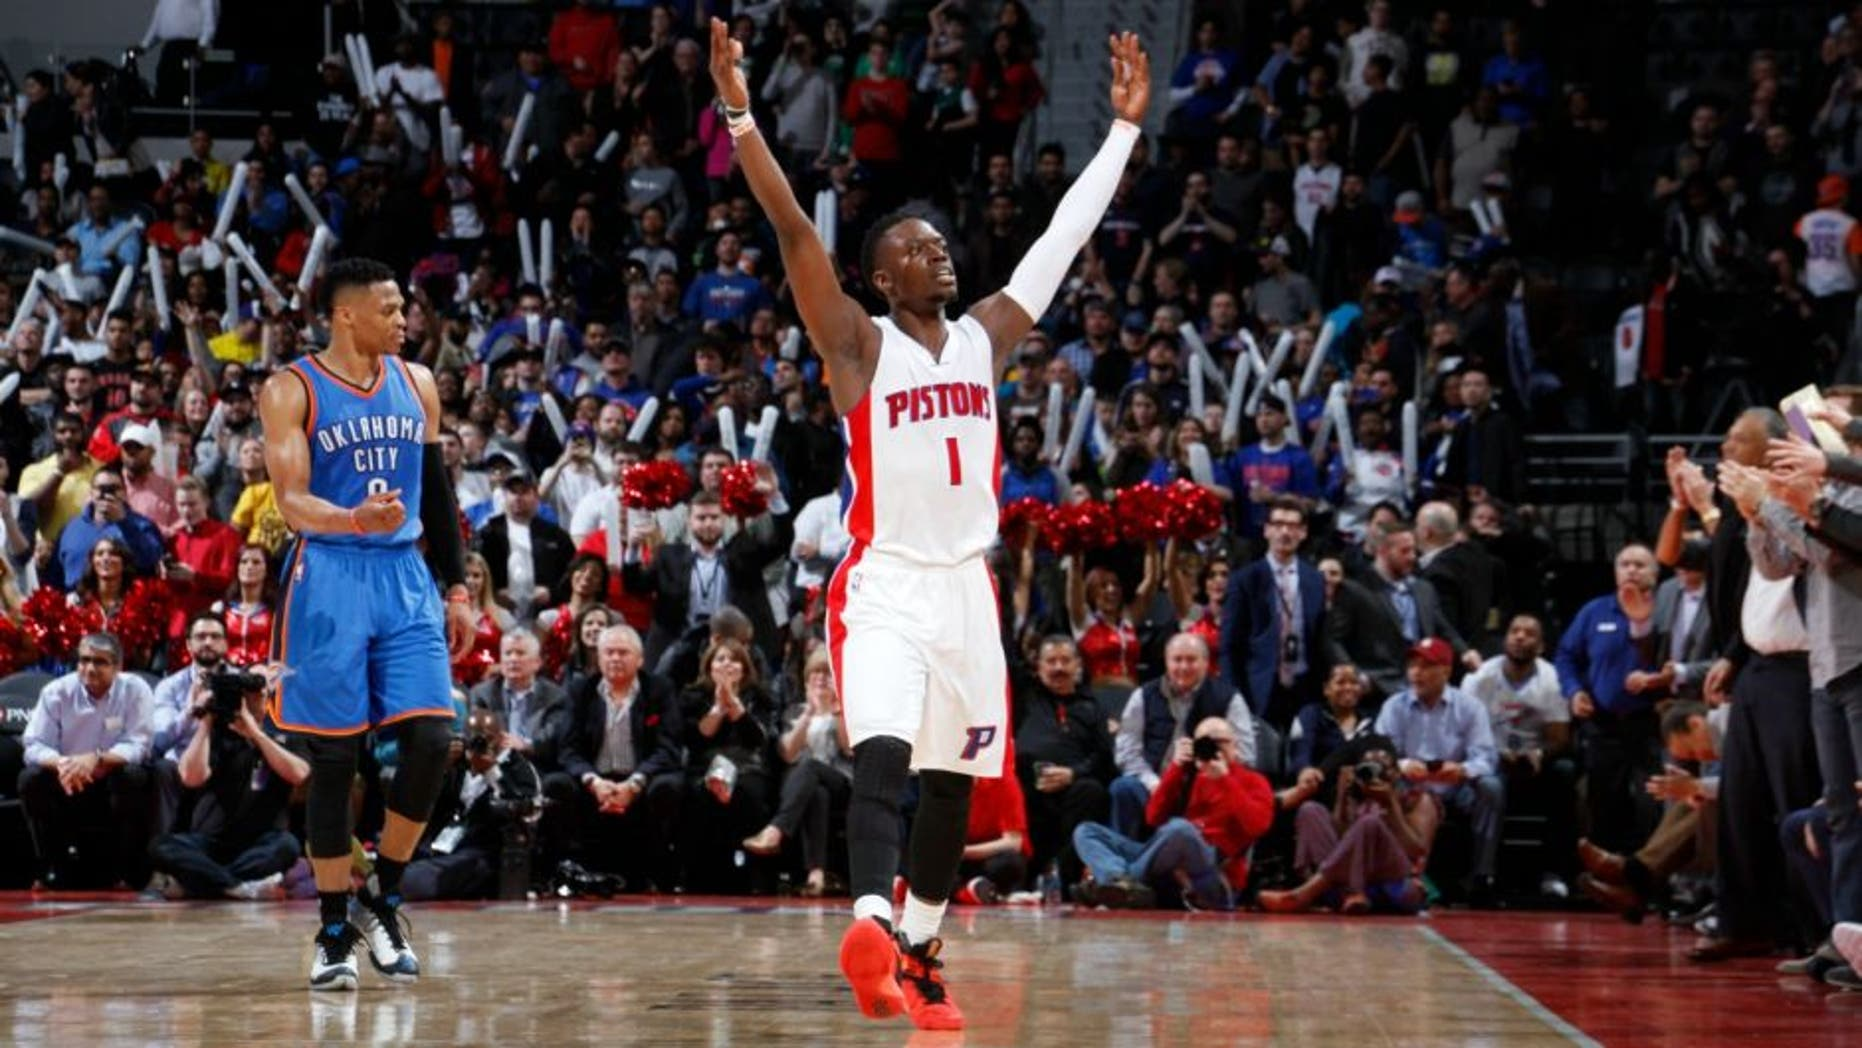 AUBURN HILLS, MI - MARCH 29: Reggie Jackson #1 of the Detroit Pistons reacts after a play against the Oklahoma City Thunder during the game on March 29, 2016 at The Palace of Auburn Hills in Auburn Hills, Michigan. NOTE TO USER: User expressly acknowledges and agrees that, by downloading and or using this Photograph, user is consenting to the terms and conditions of the Getty Images License Agreement. Mandatory Copyright Notice: Copyright 2016 NBAE (Photo by B. Sevald/Einstein/NBAE via Getty Images)